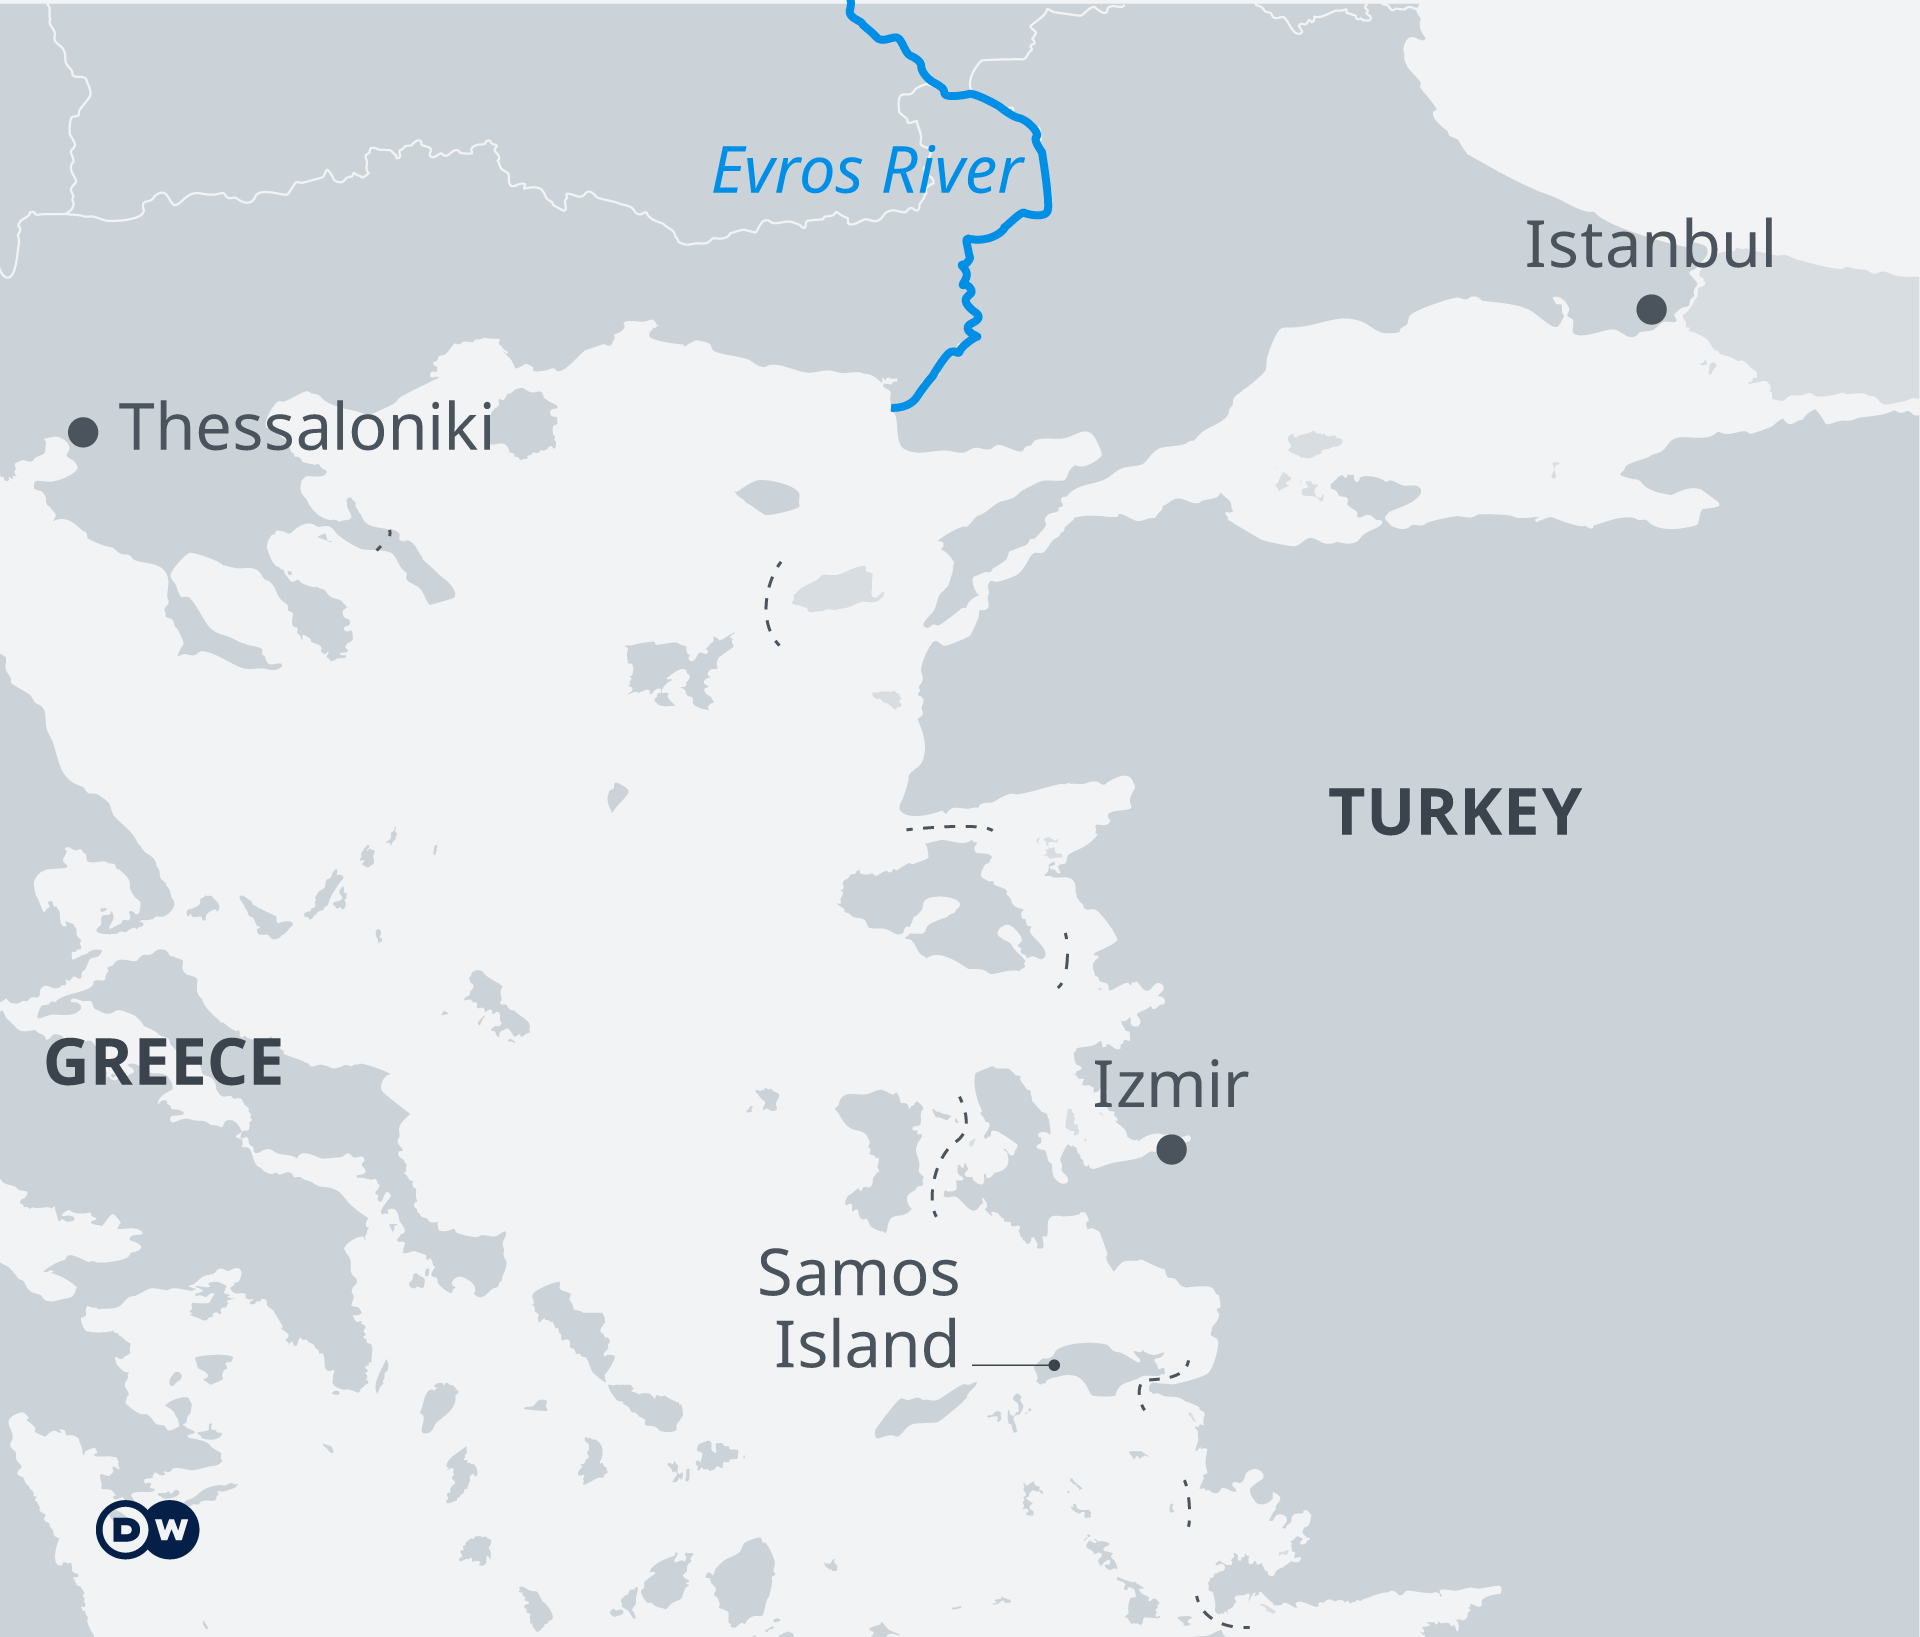 A map showing the border between Turkey and Greece